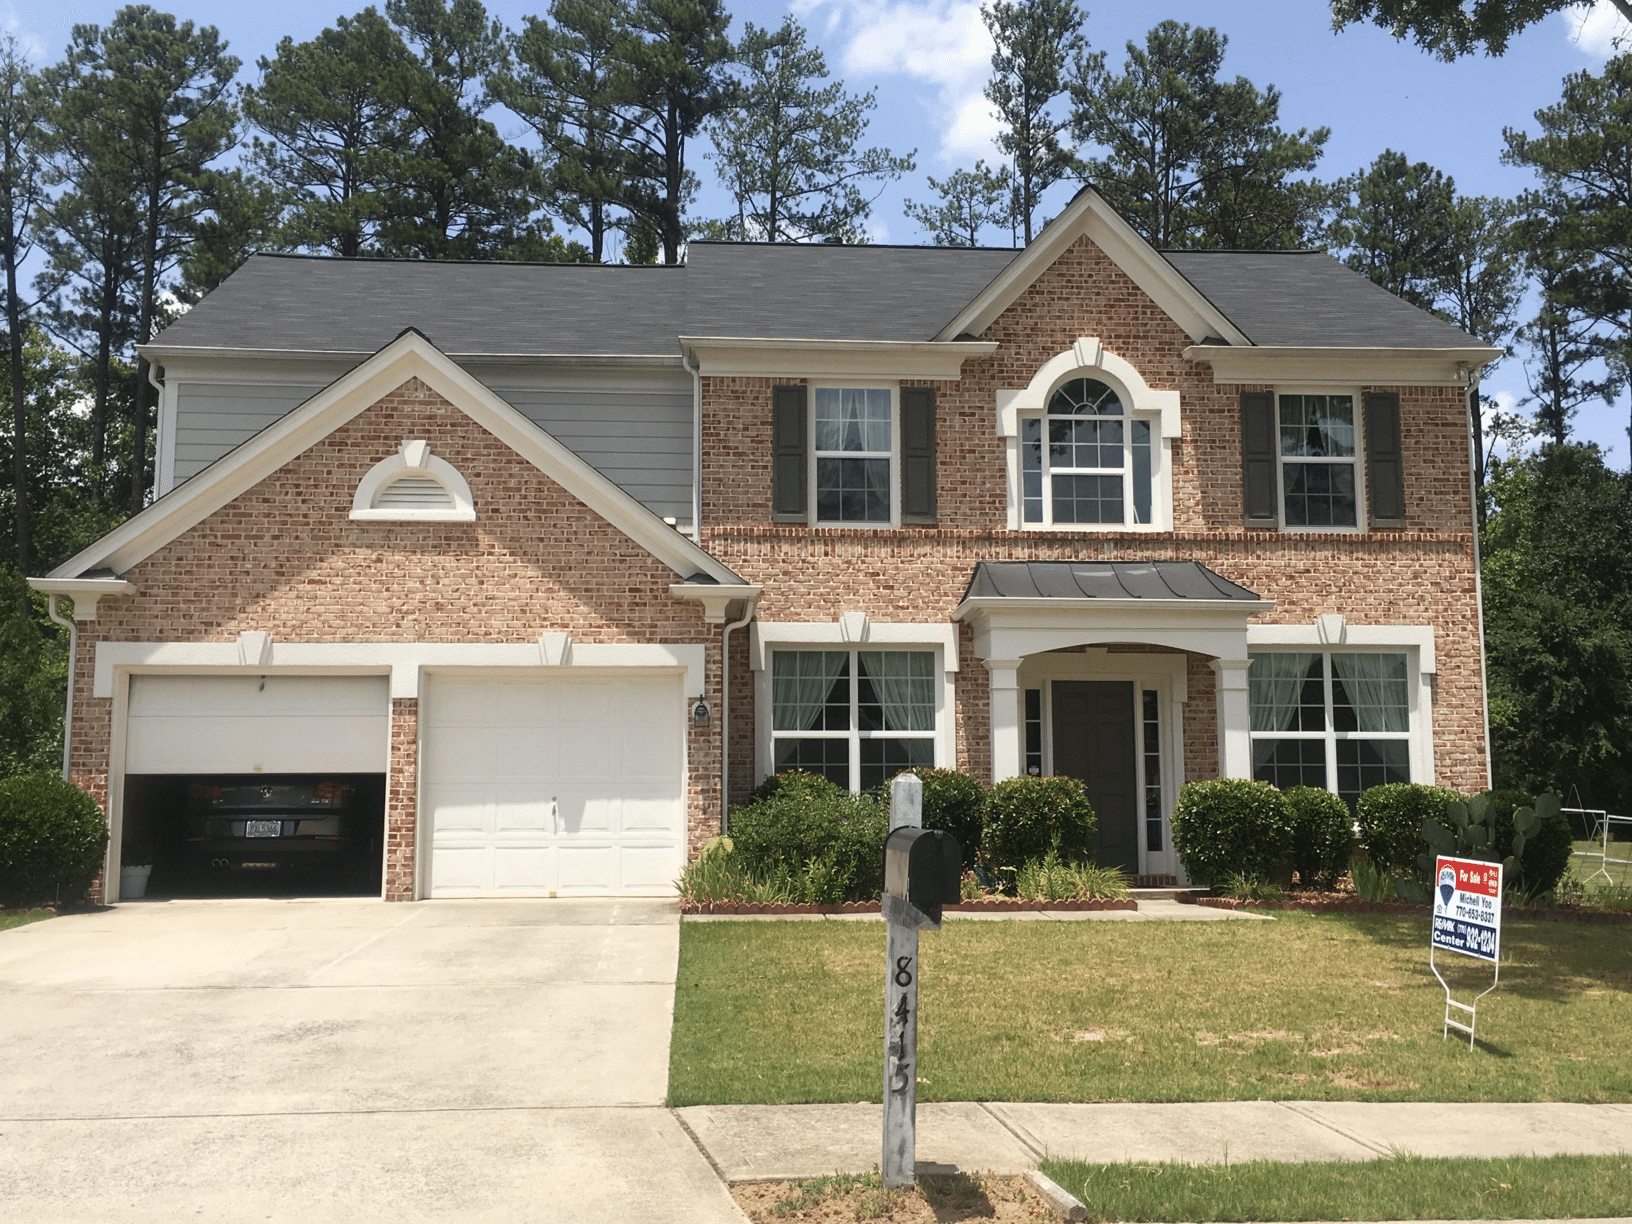 Roof Replacement due to Hail Damage in Johns Creek - After Photo